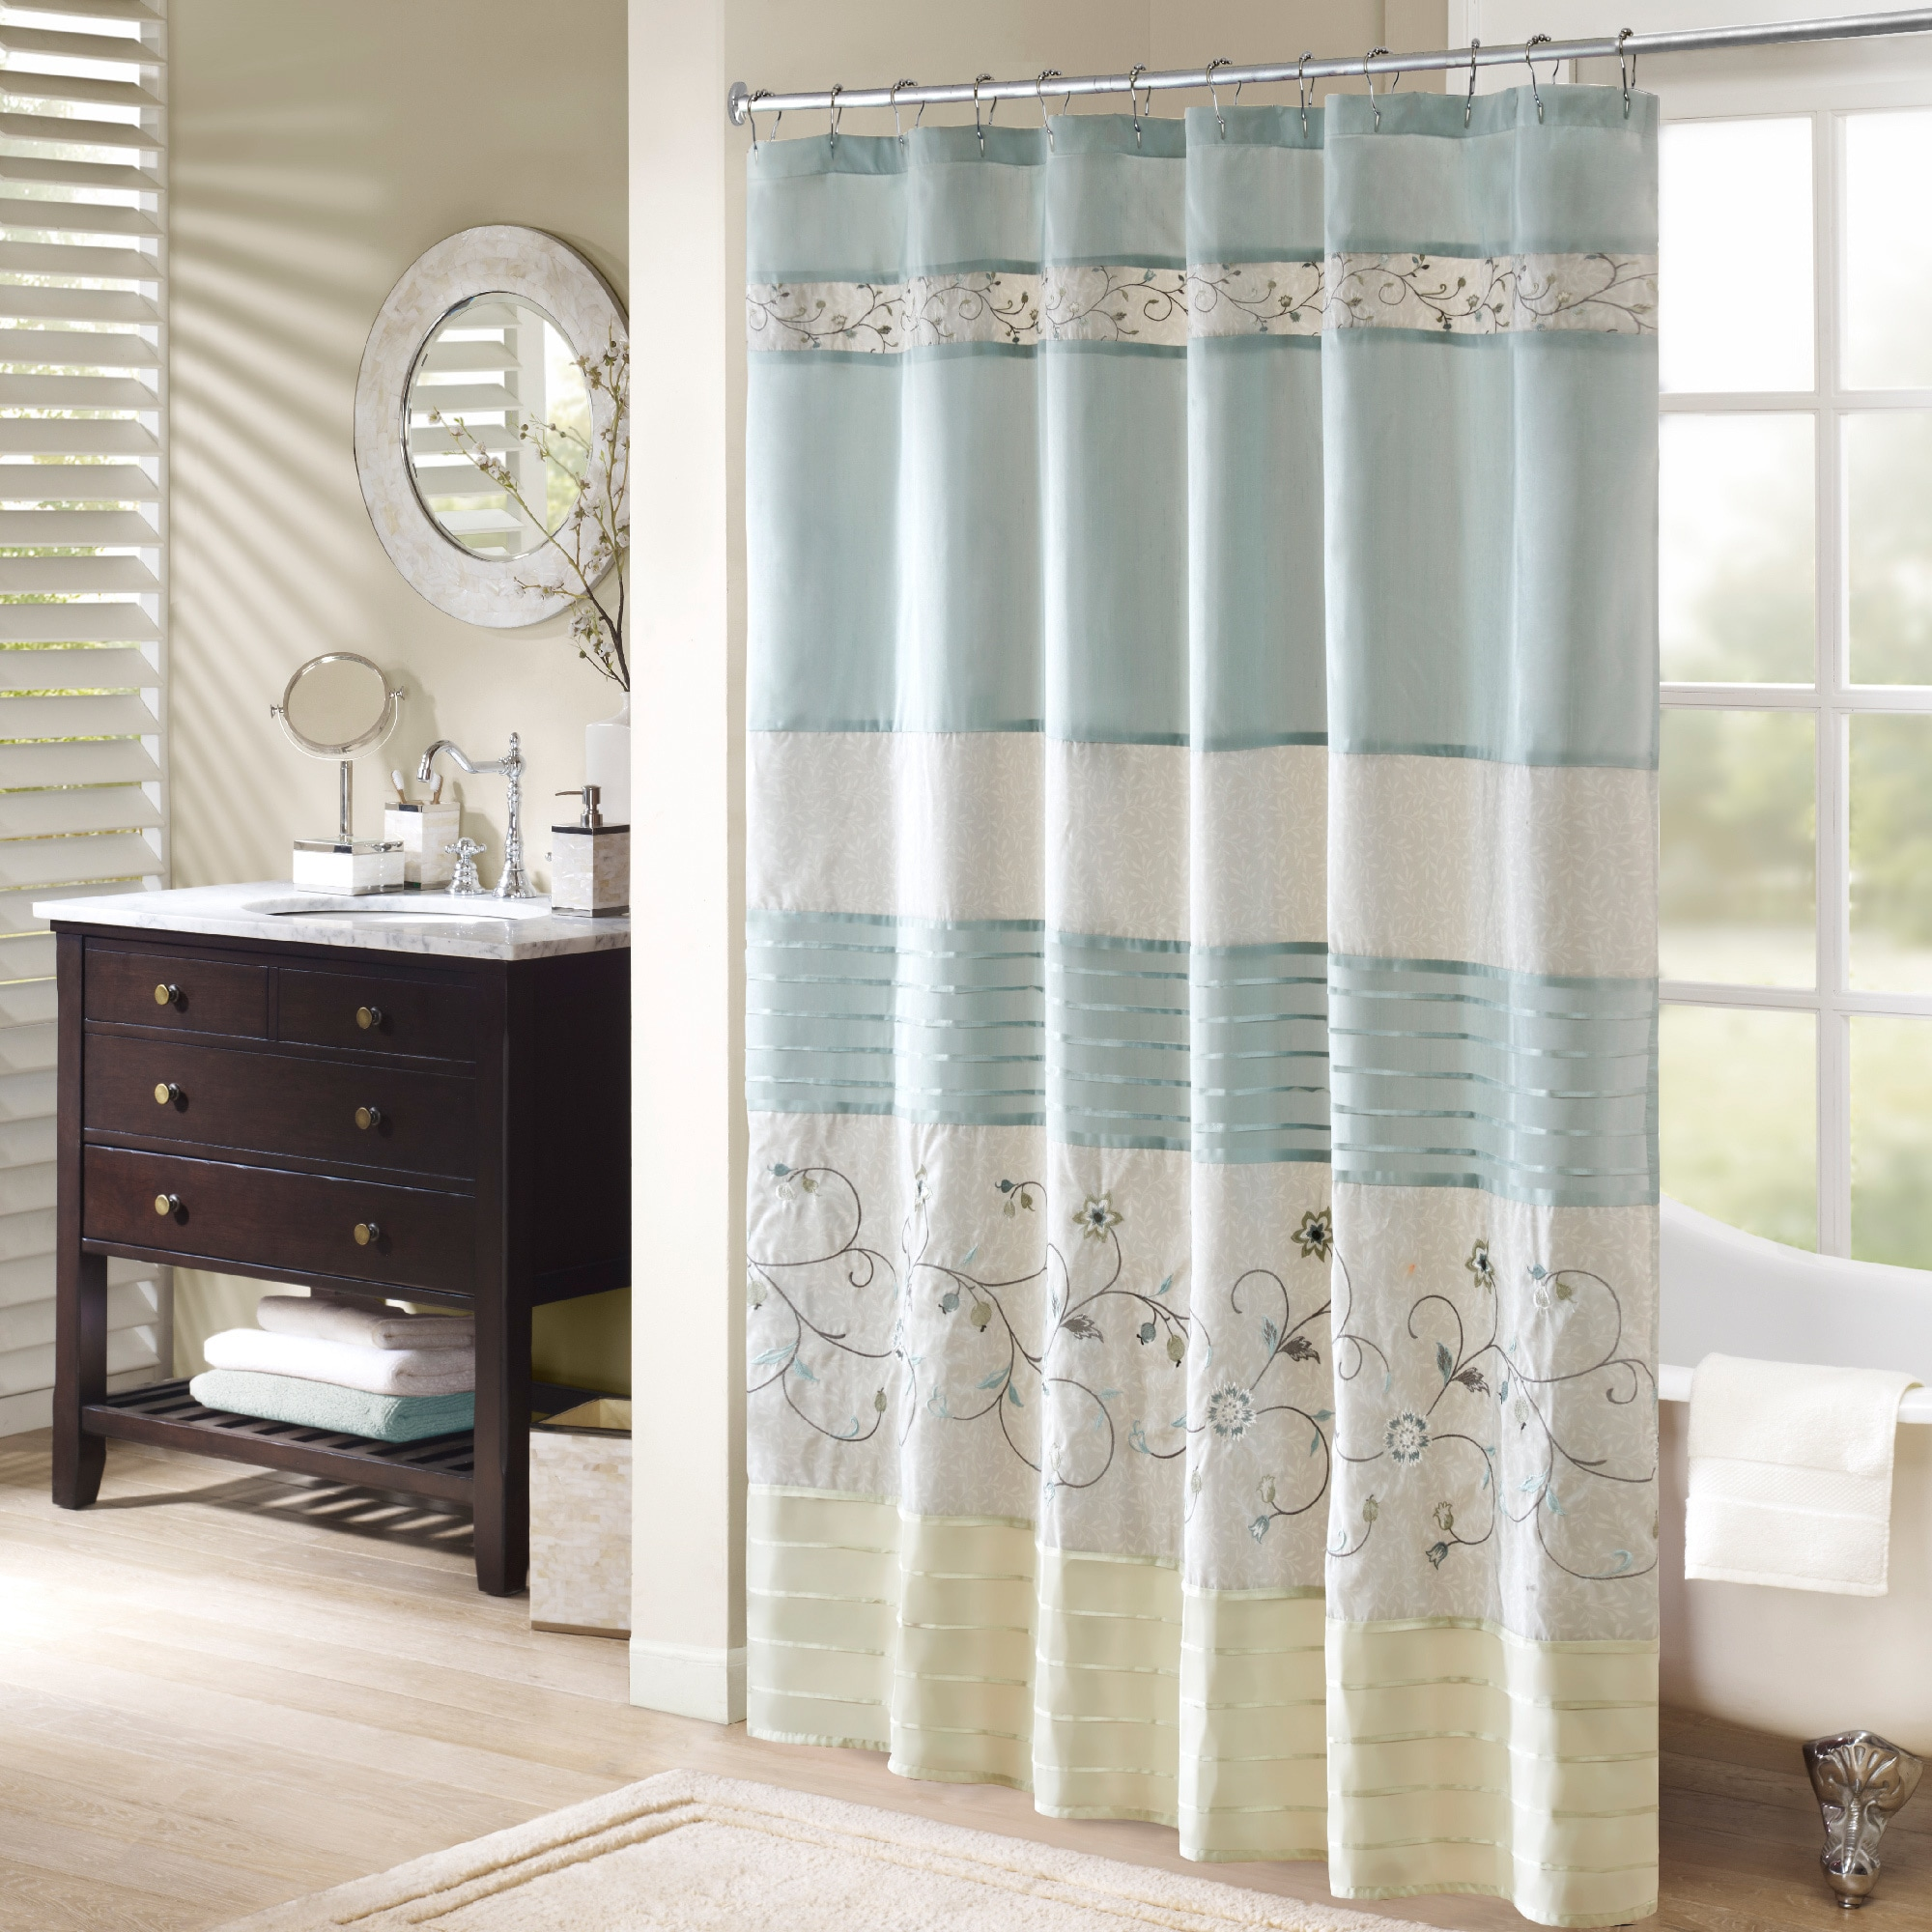 Madison Park Belle Faux Silk Embroidered Floral Shower Curtain - Free  Shipping On Orders Over $45 - Overstock.com - 15854515